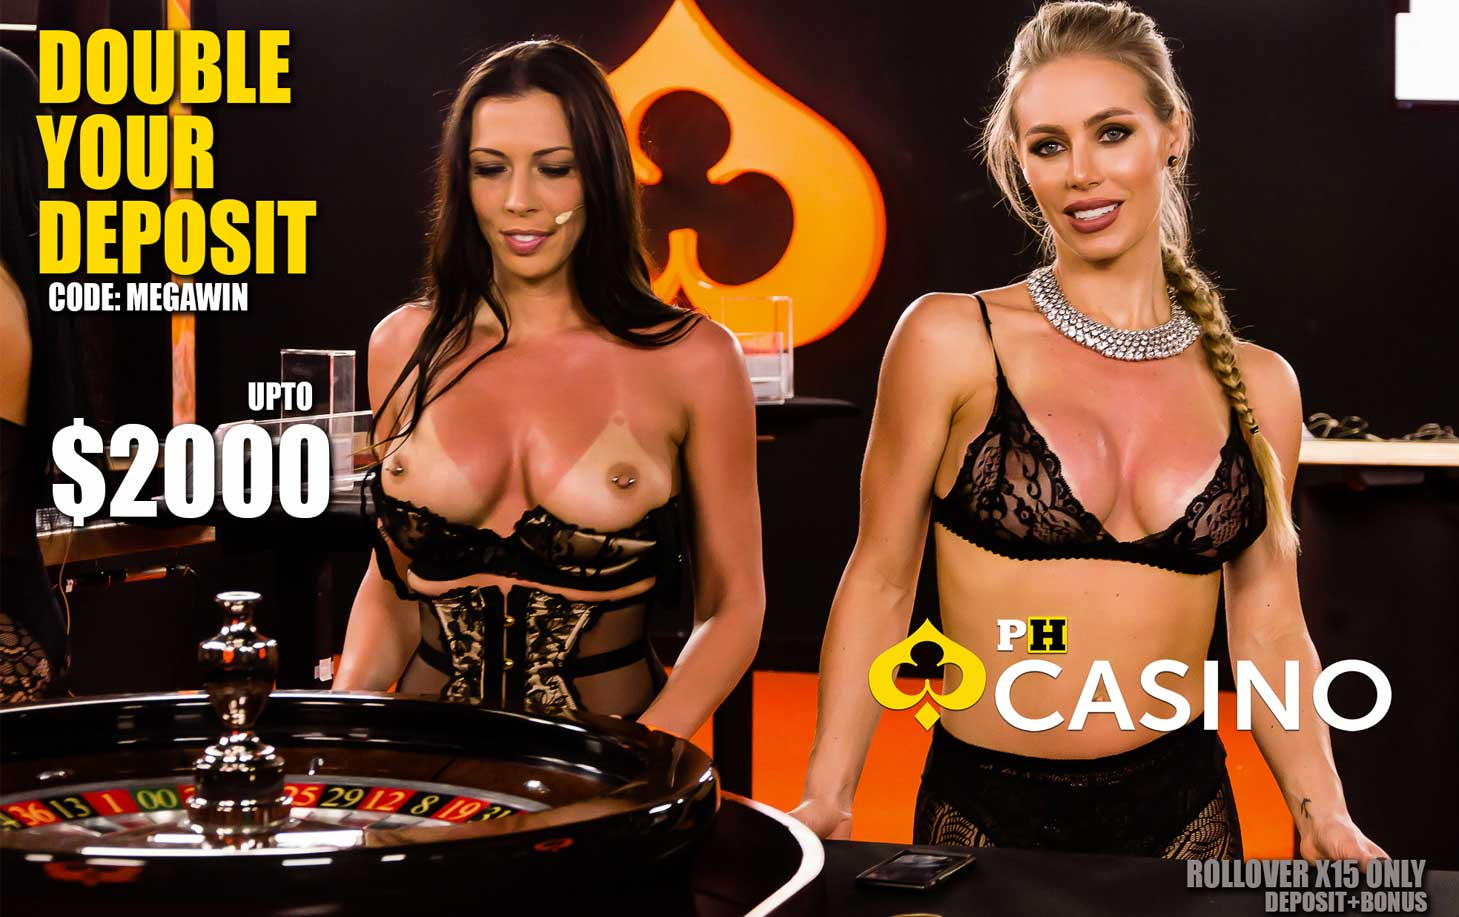 PH Erotic Casino - Bonuses